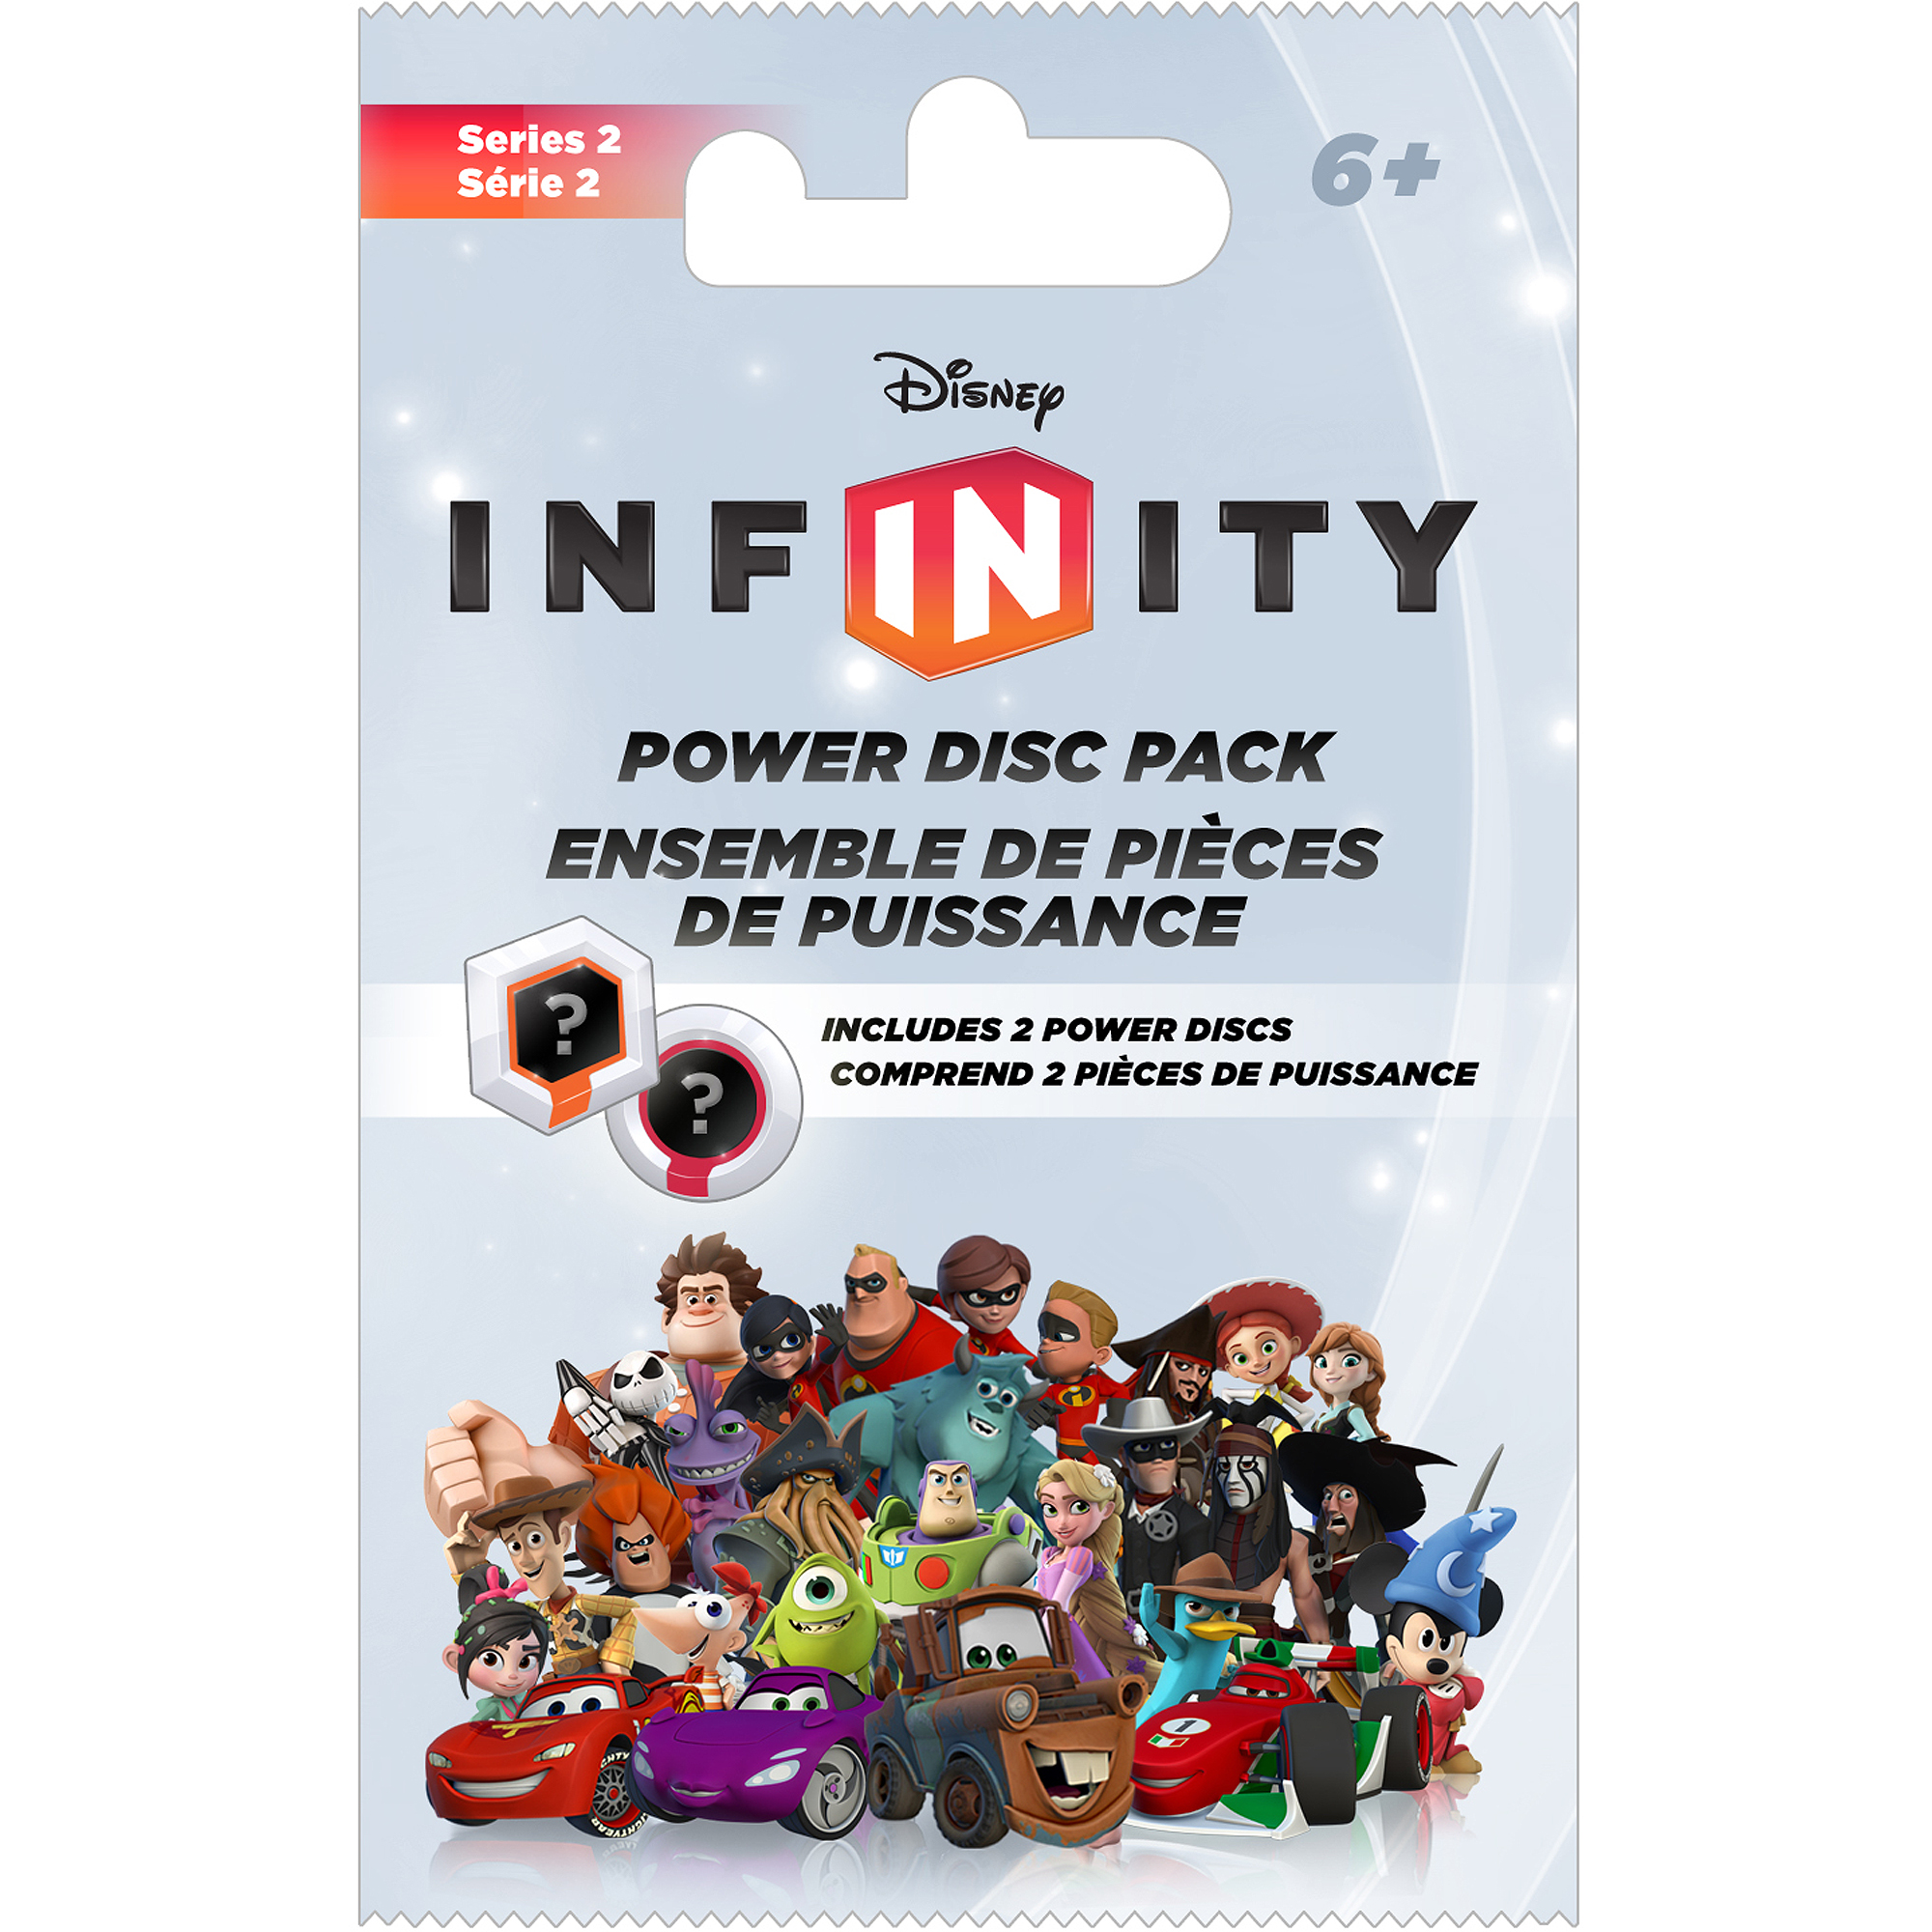 Disney Infinity Power Disc 2-Pack - Series 2 (Universal)